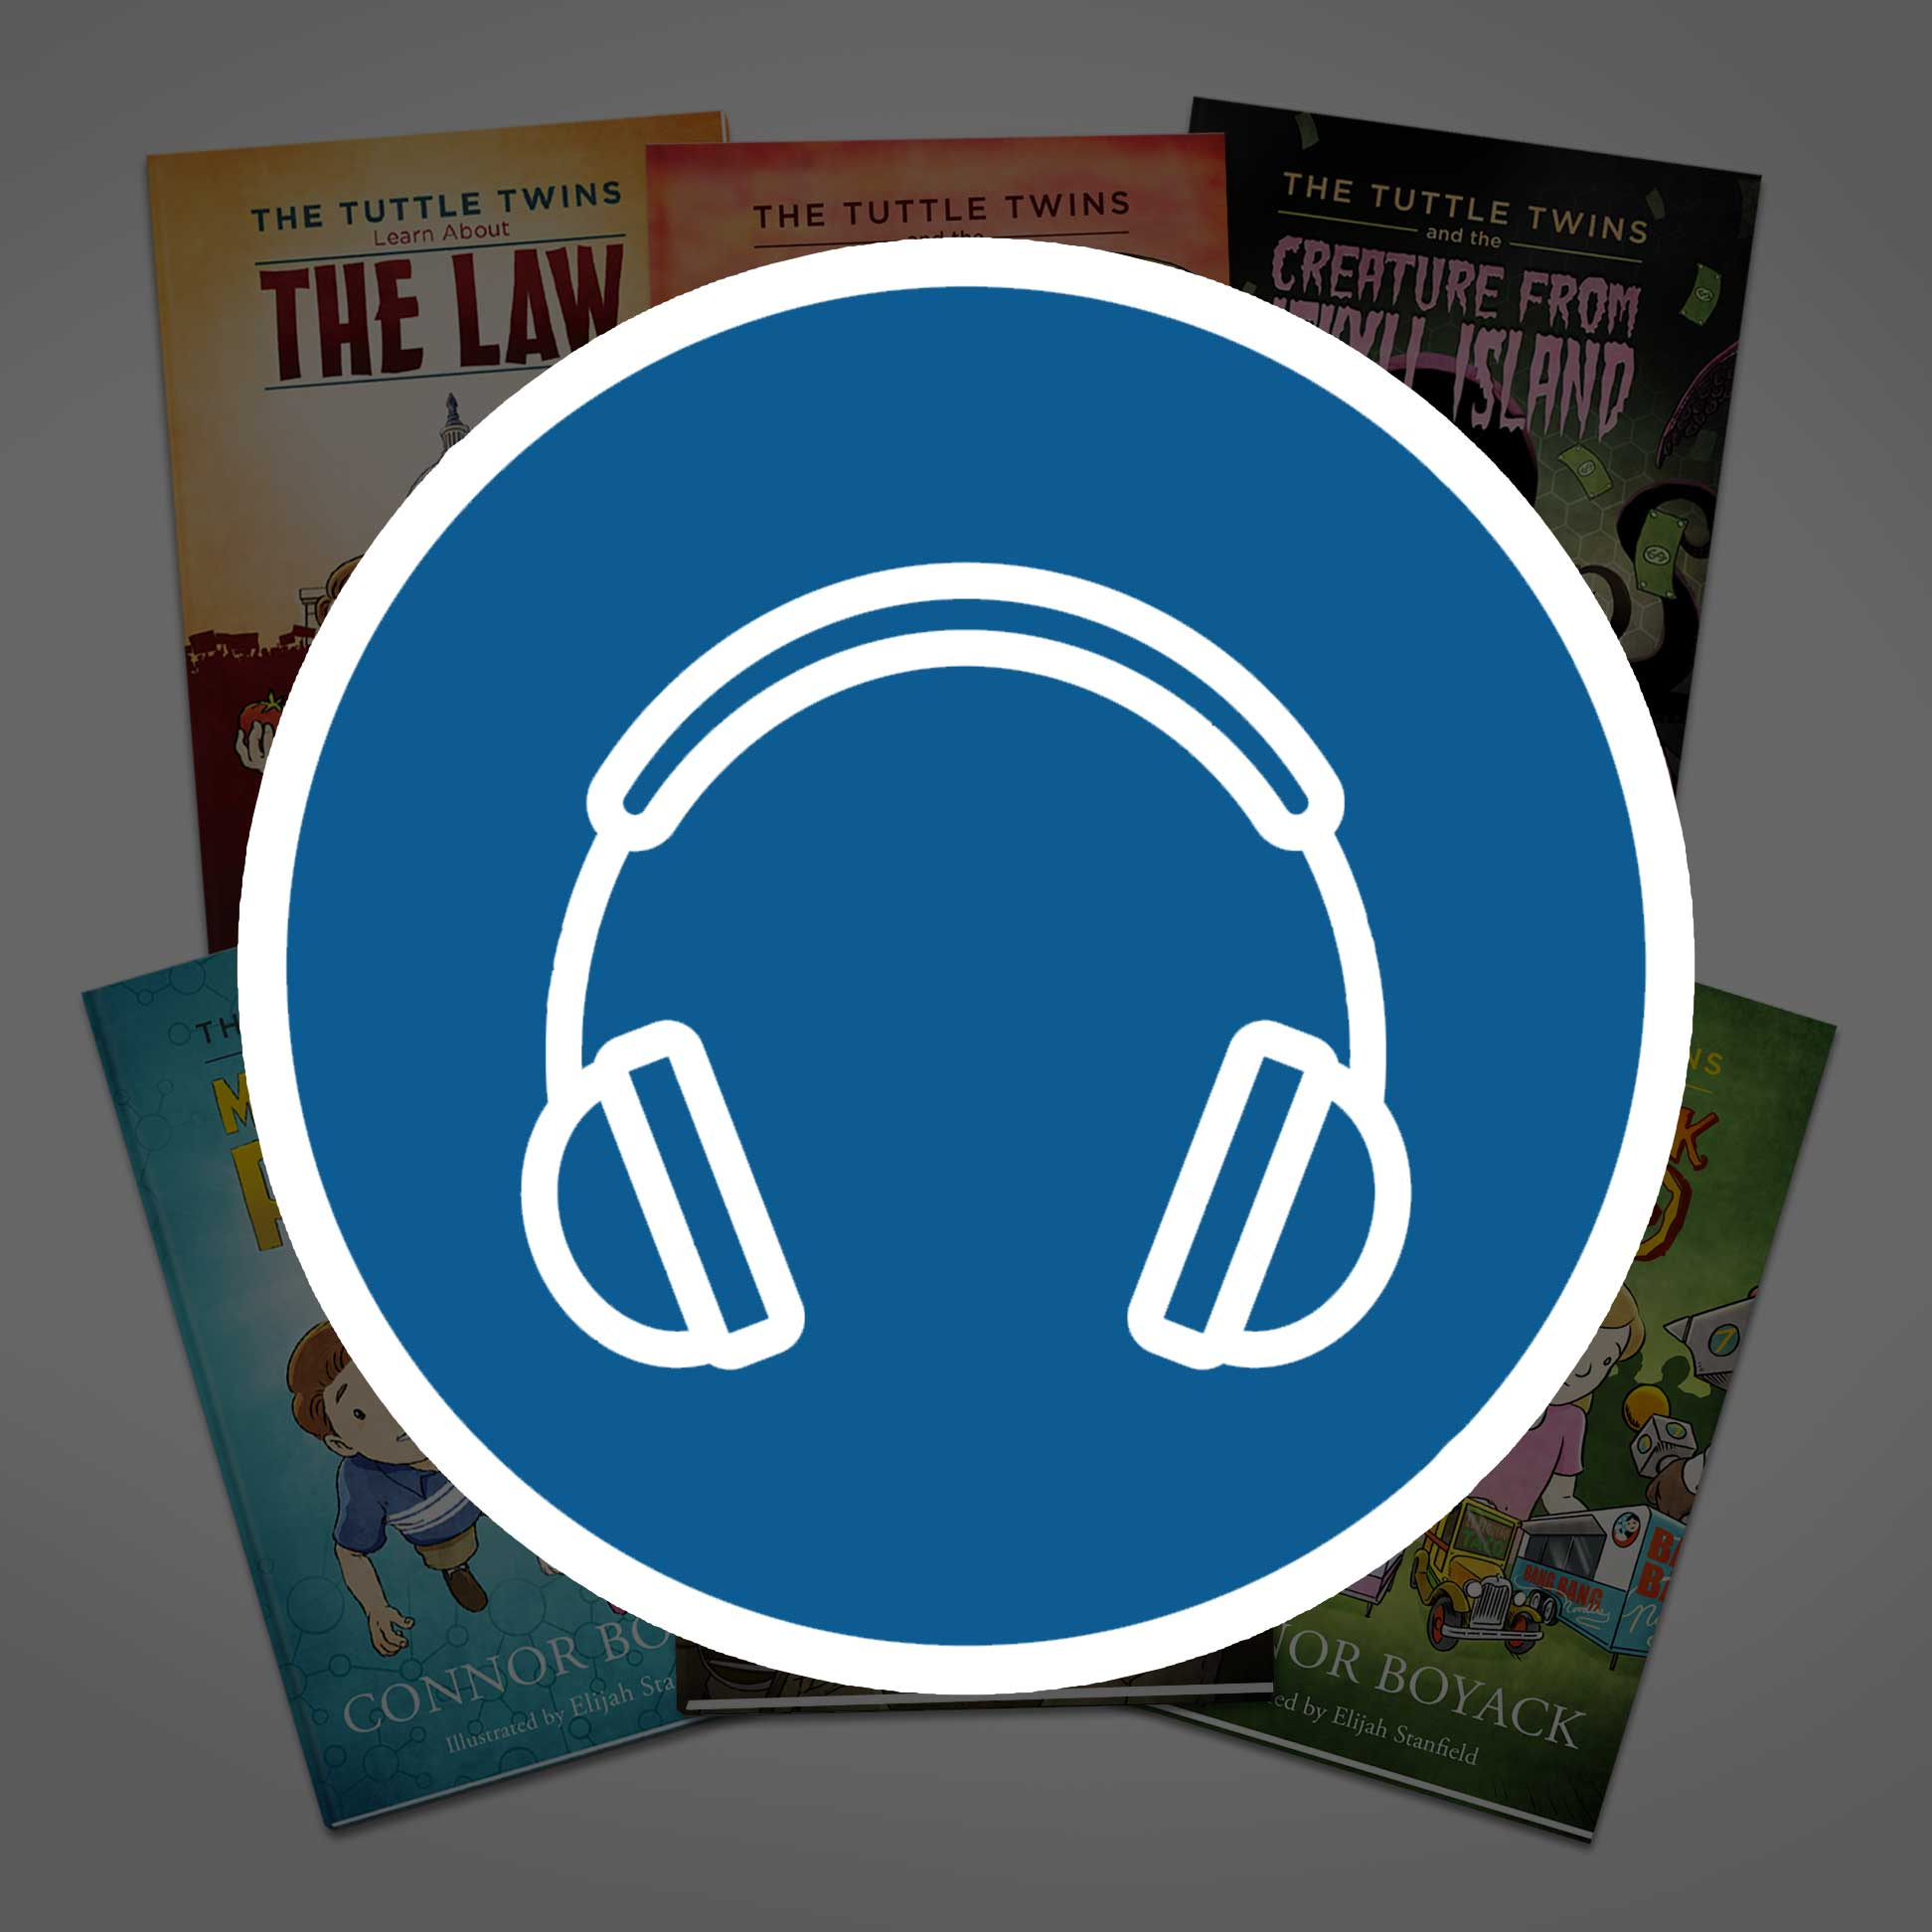 Tuttle Twins Audiobooks (ALL 11)